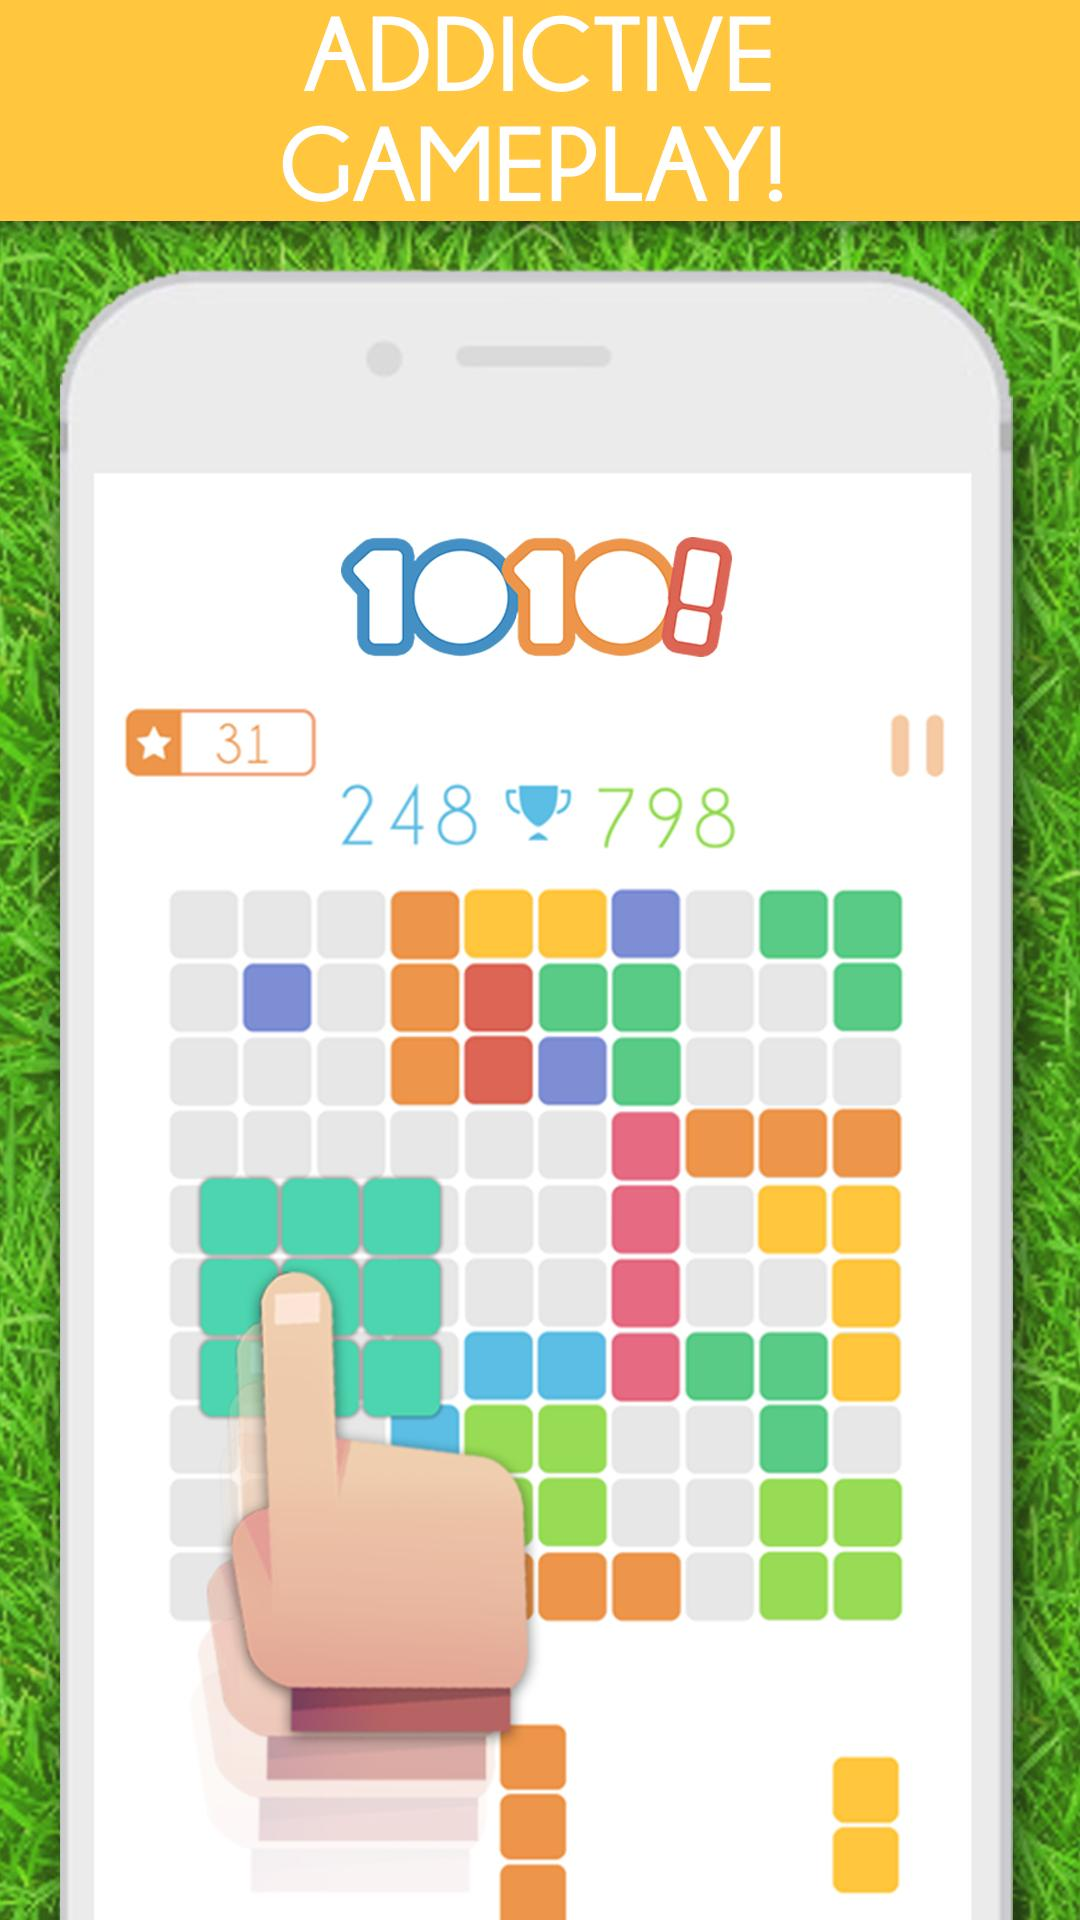 Download game 1010! For android 2 | chainimage.